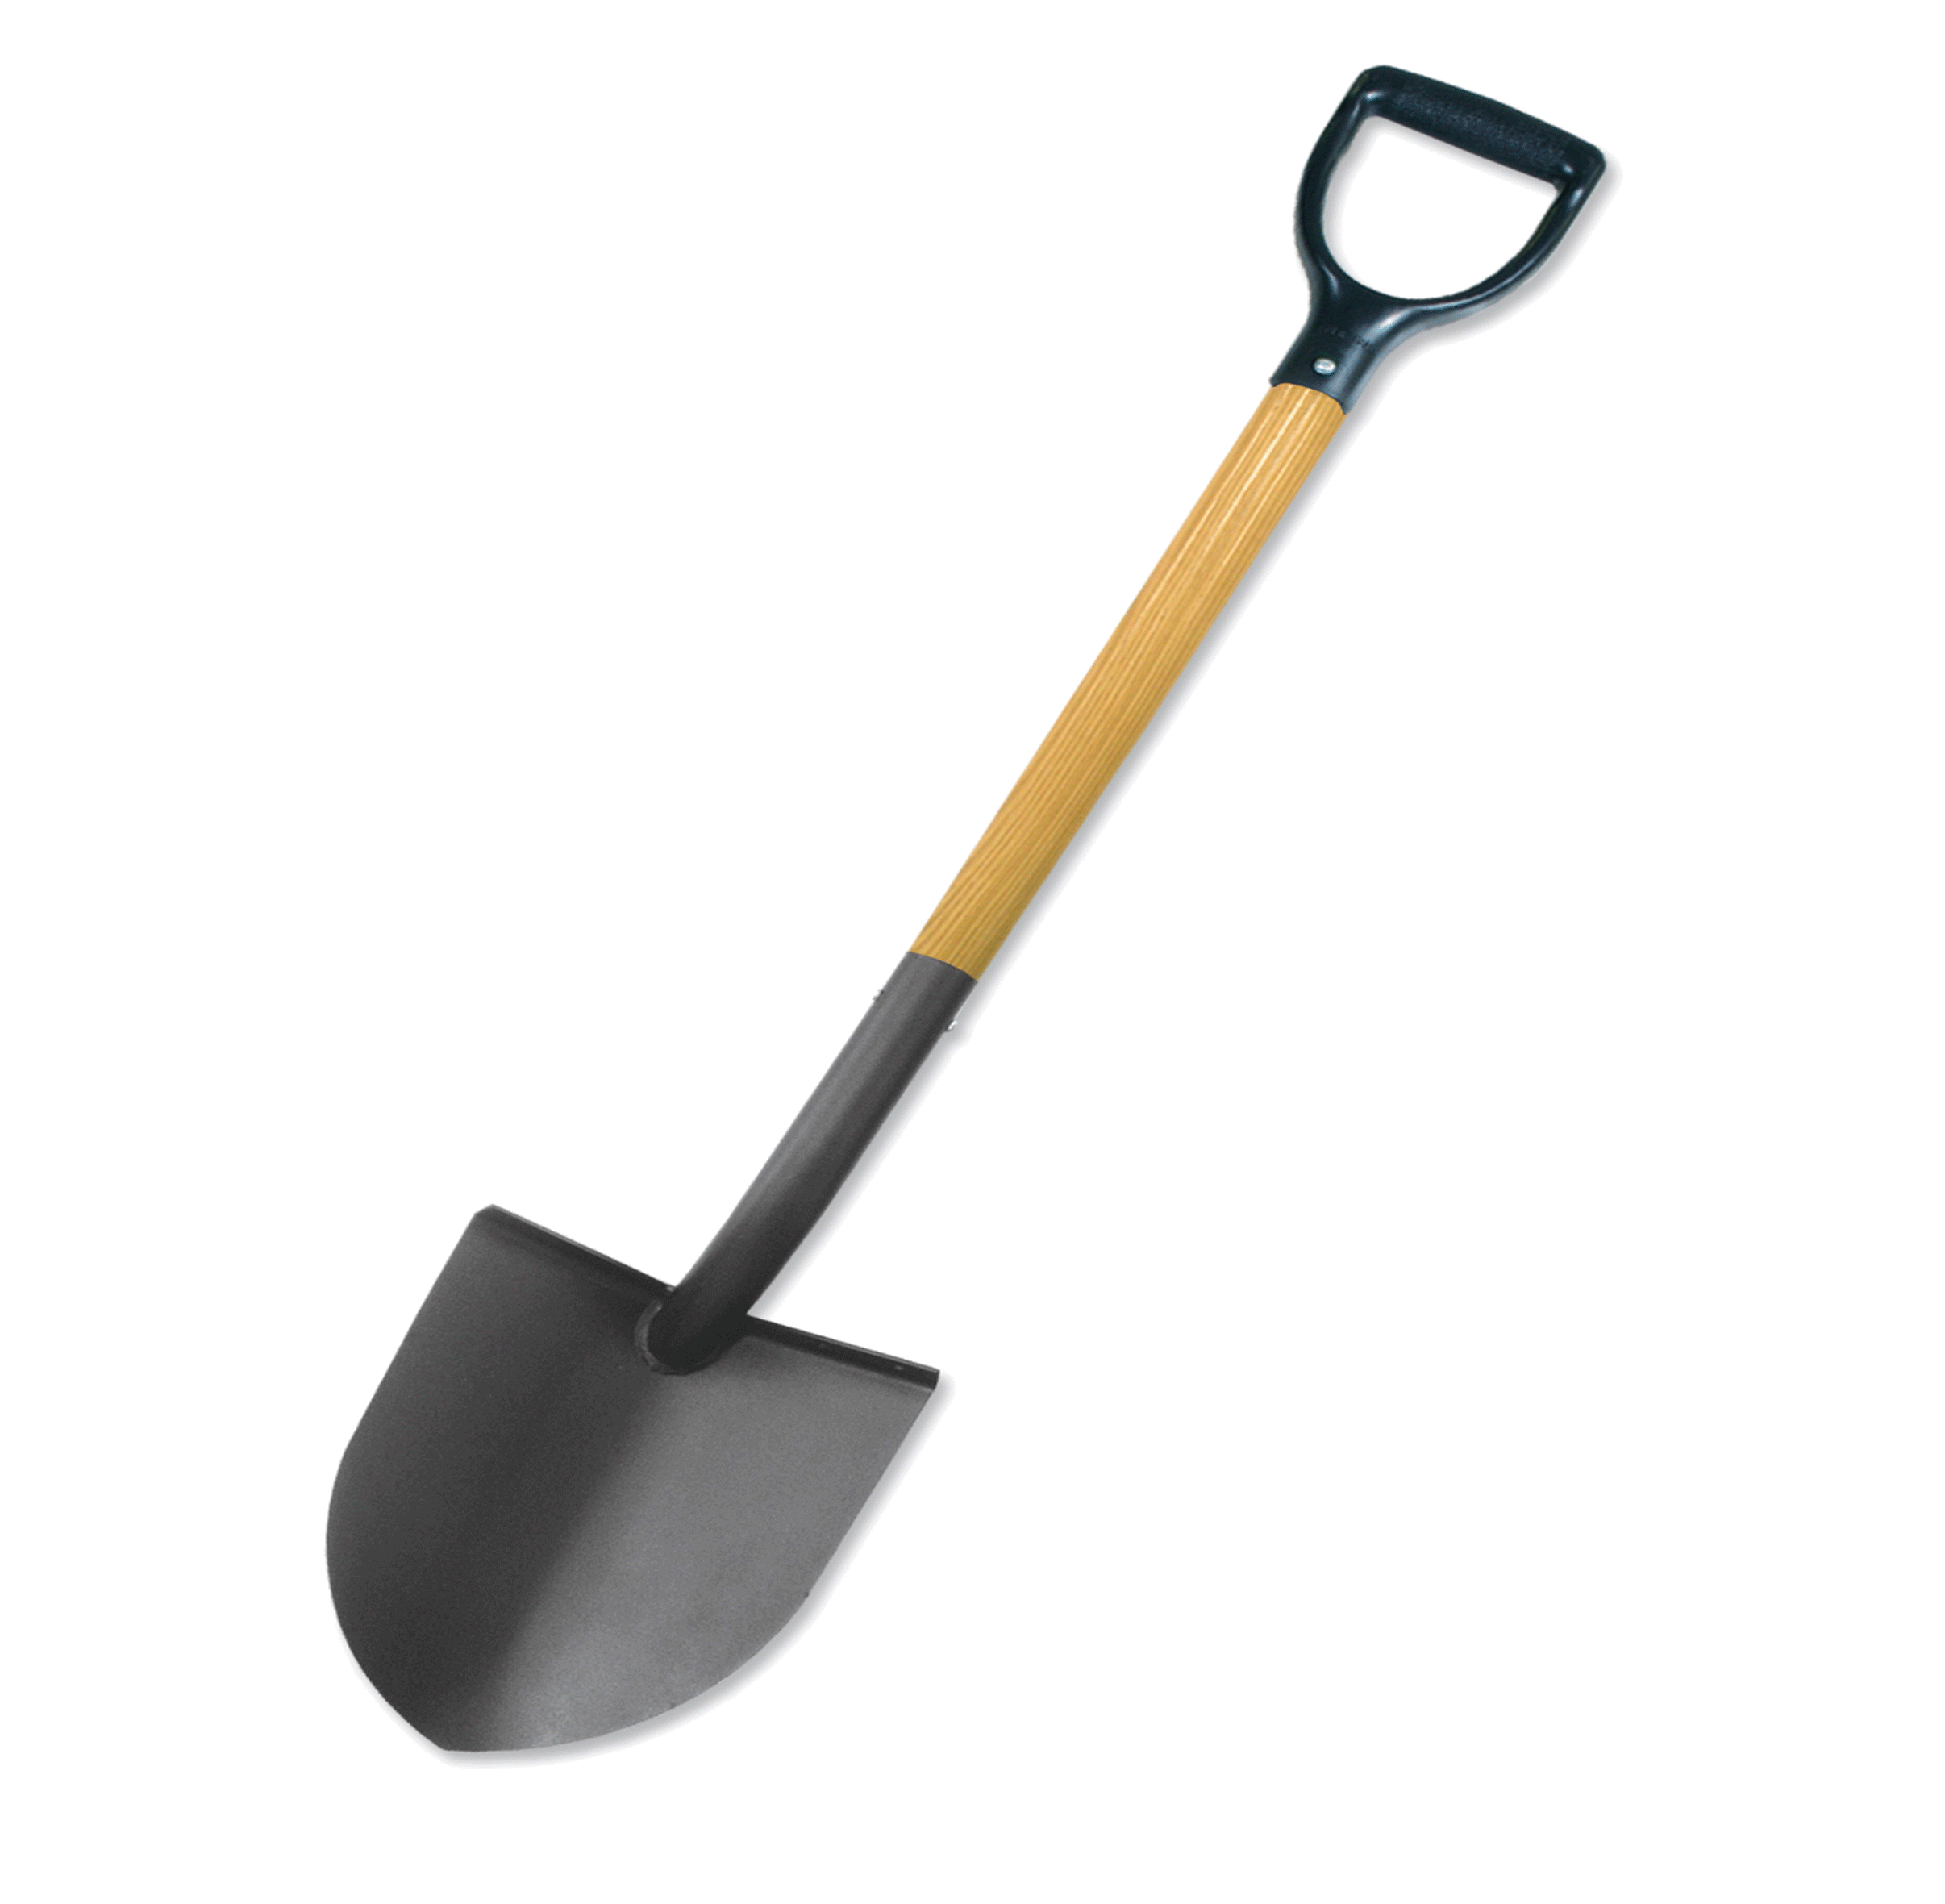 Shovel Transparent PNG Image - Shovel HD PNG